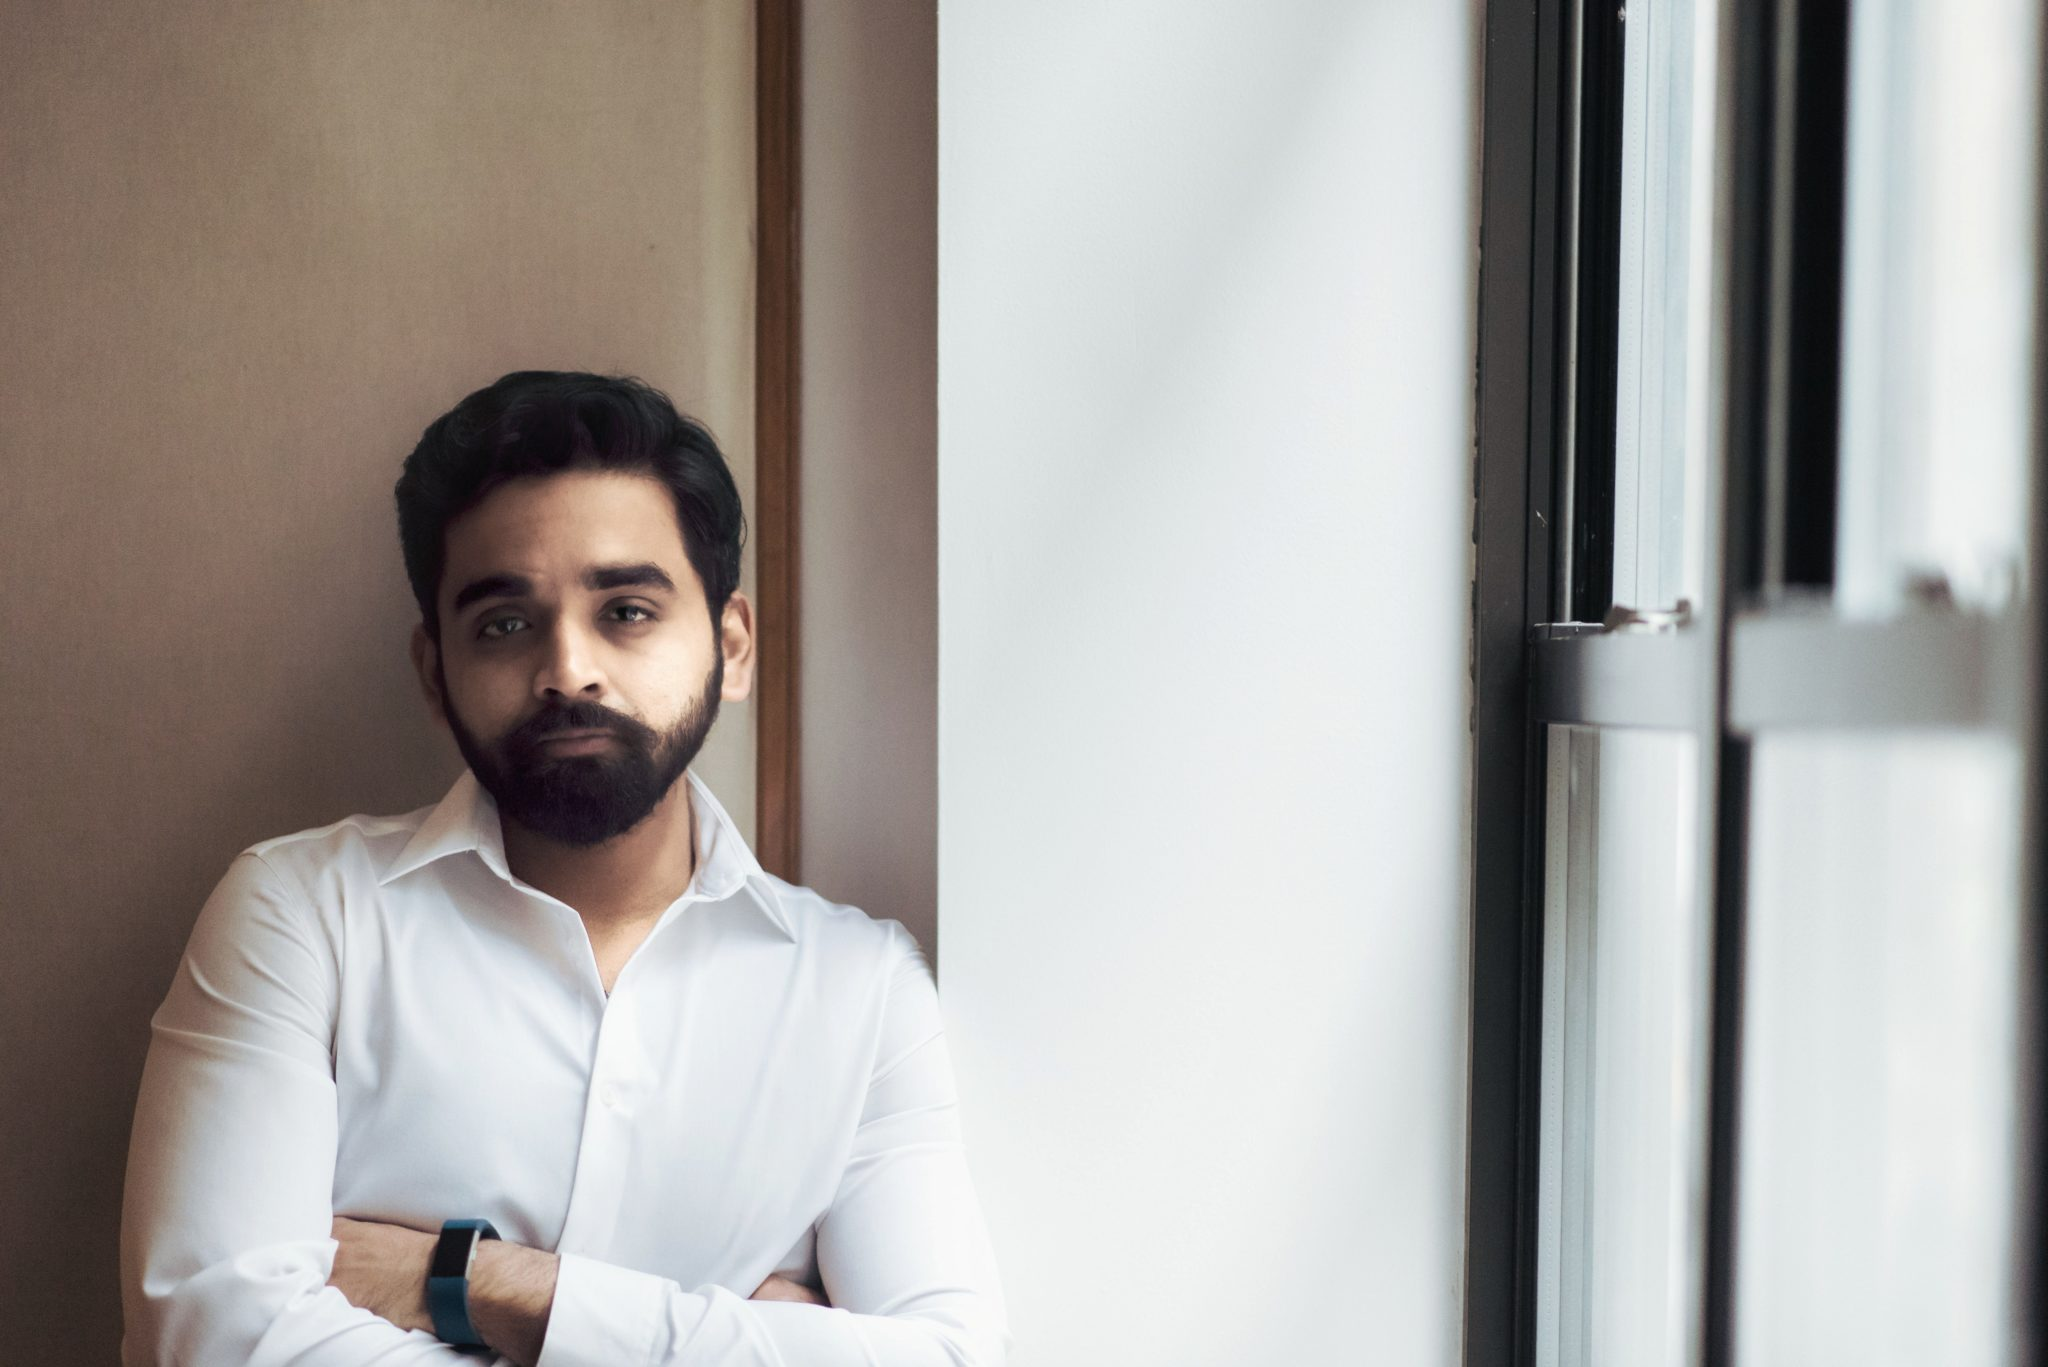 How an Indian Engineering Student Became a Top Animator